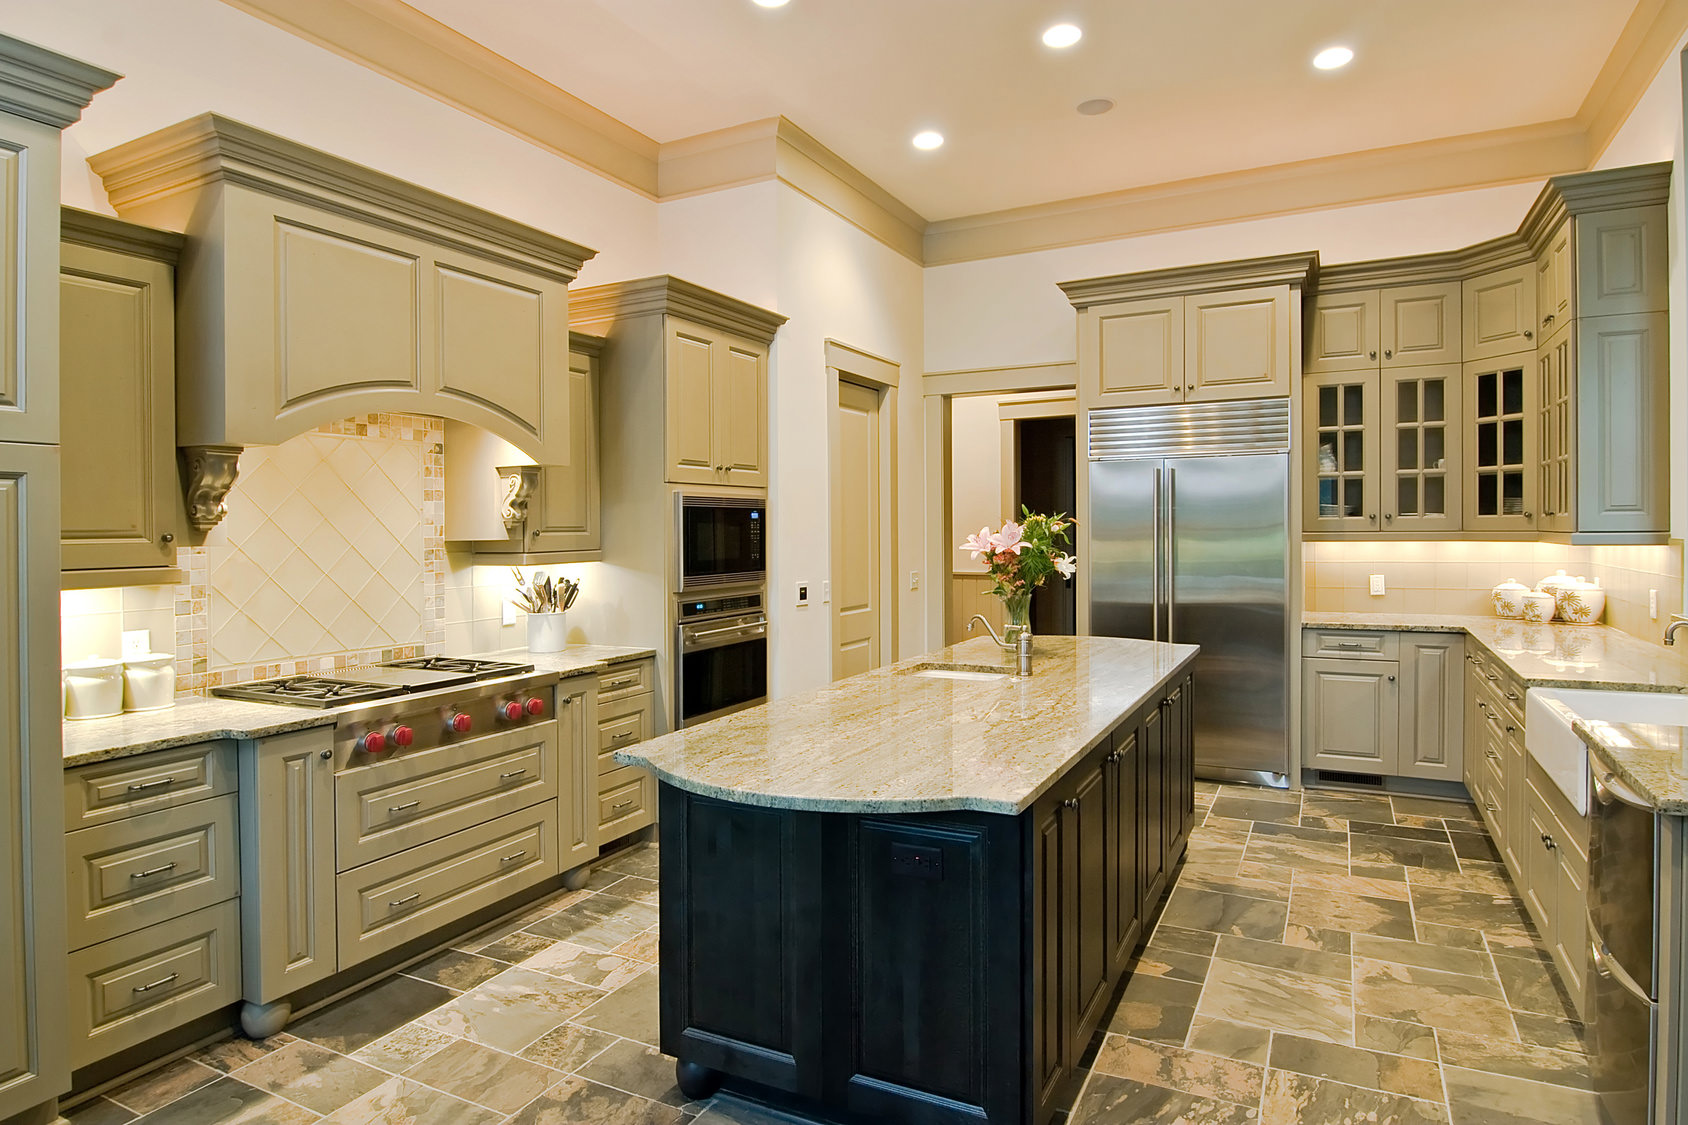 This kitchen offers stylish tiles floors, cabinetry and kitchen counters, along with a center island both with marble countertops.